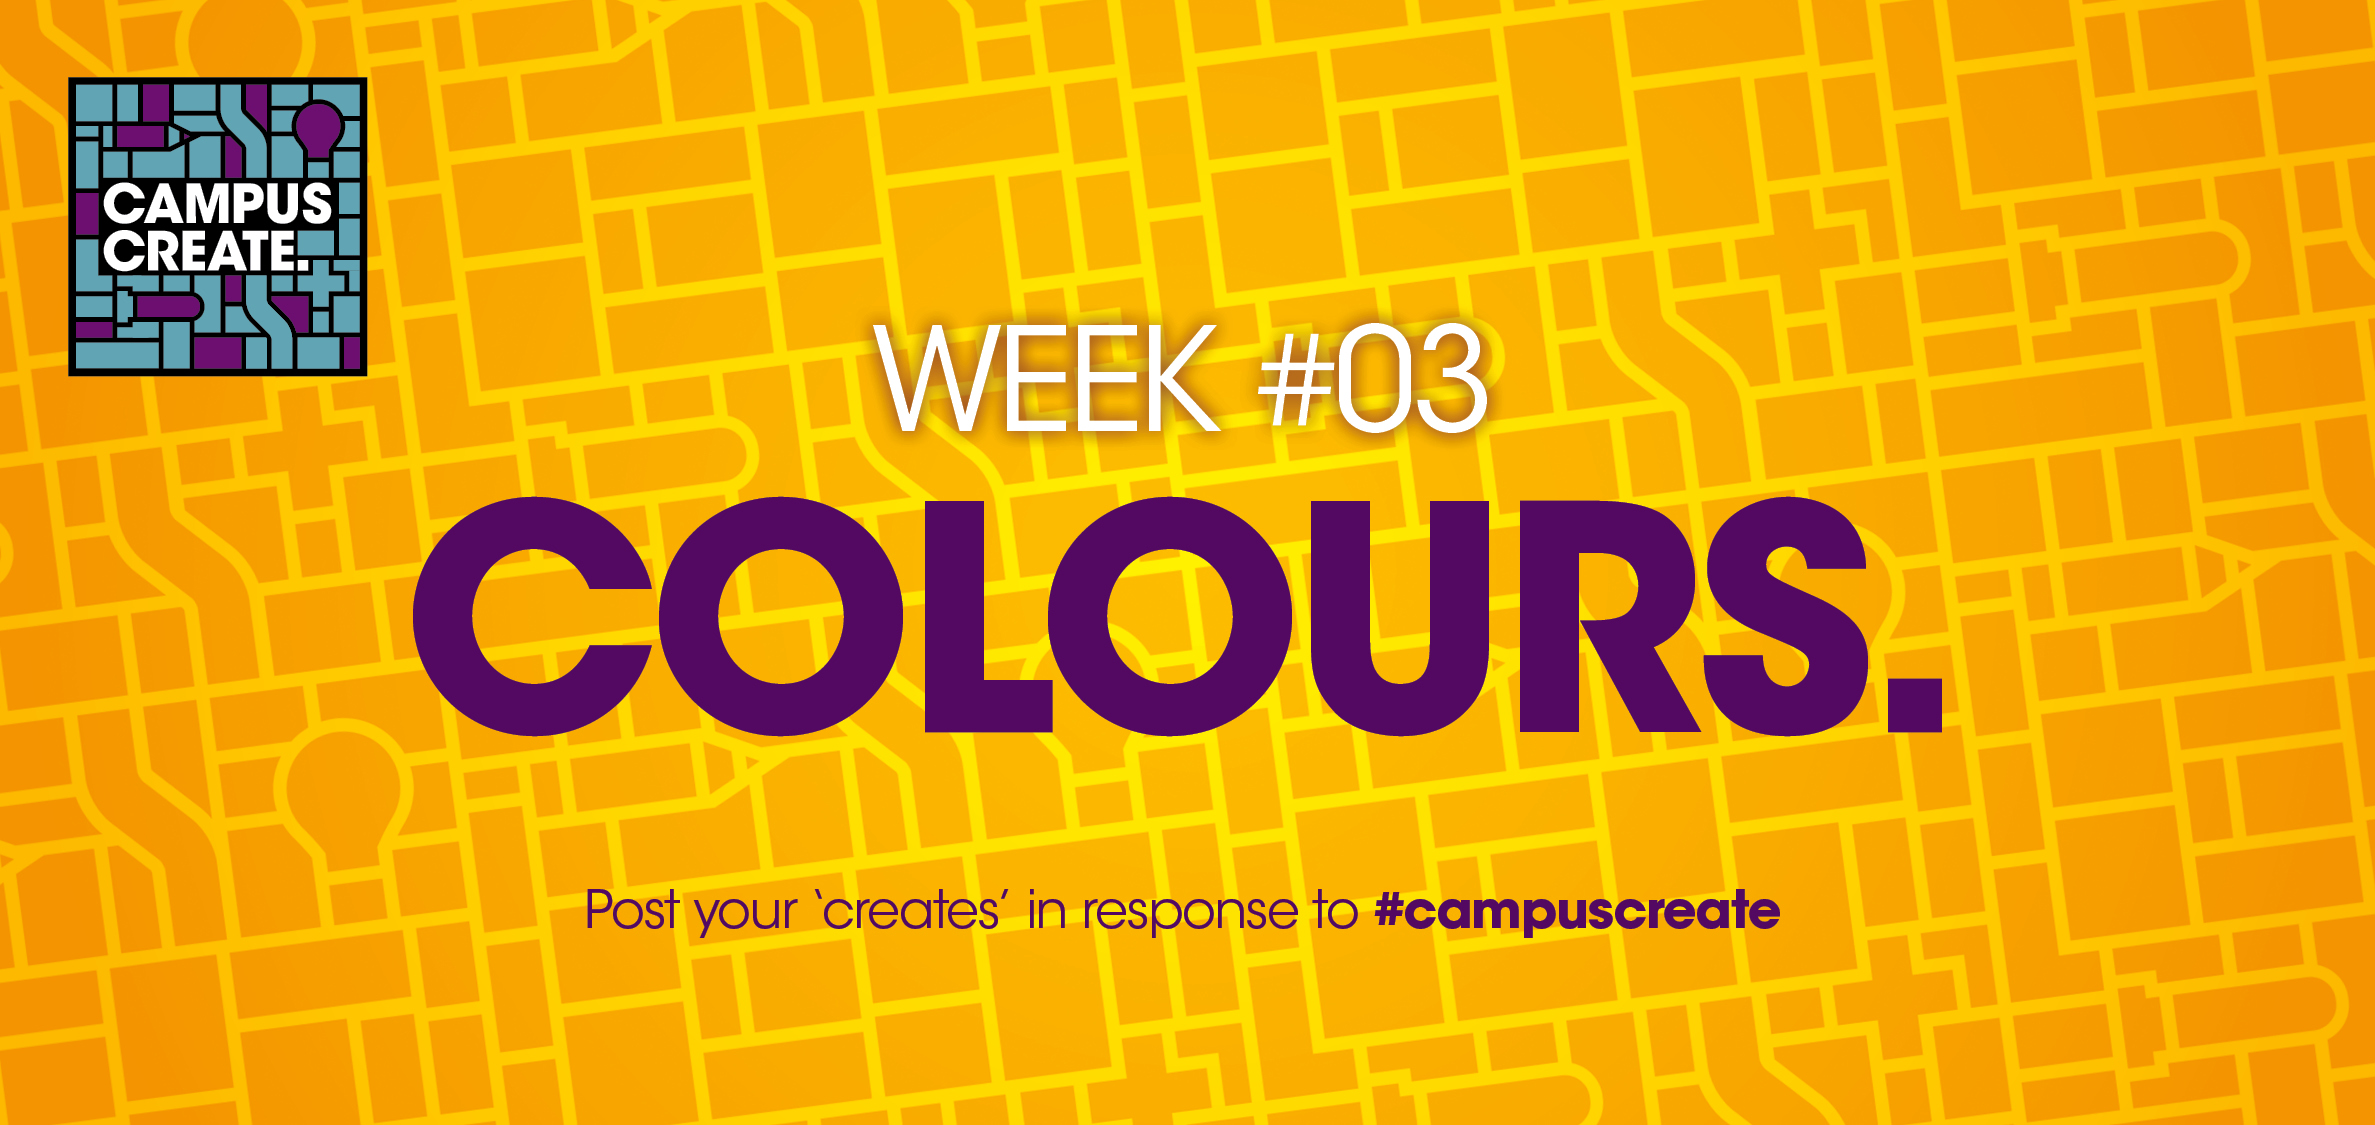 Campus Create Web Banners Colours